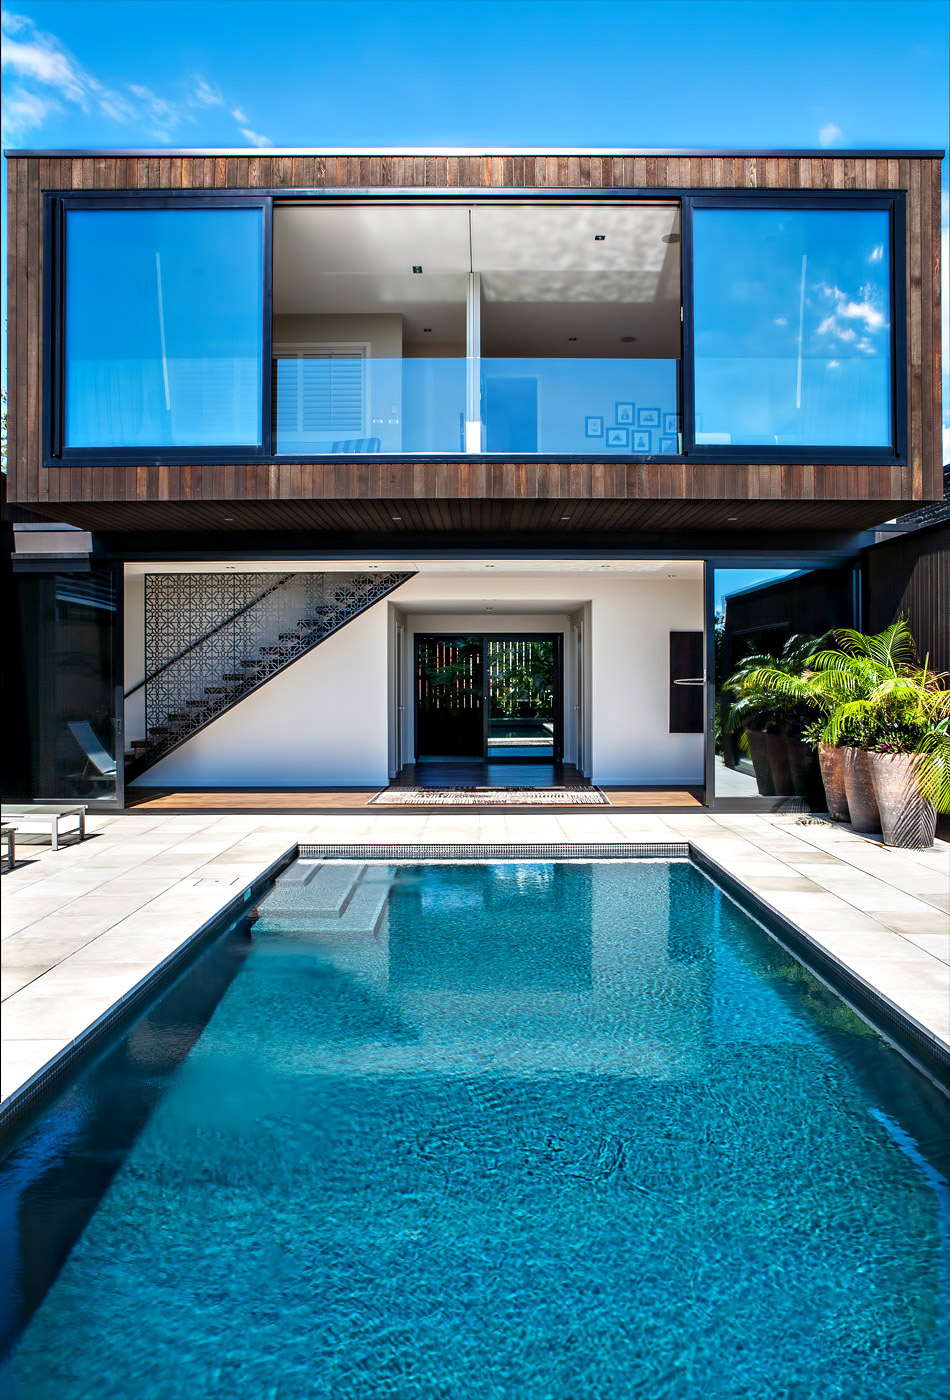 Godden Cres Residence - Mission Bay, Auckland, New Zealand